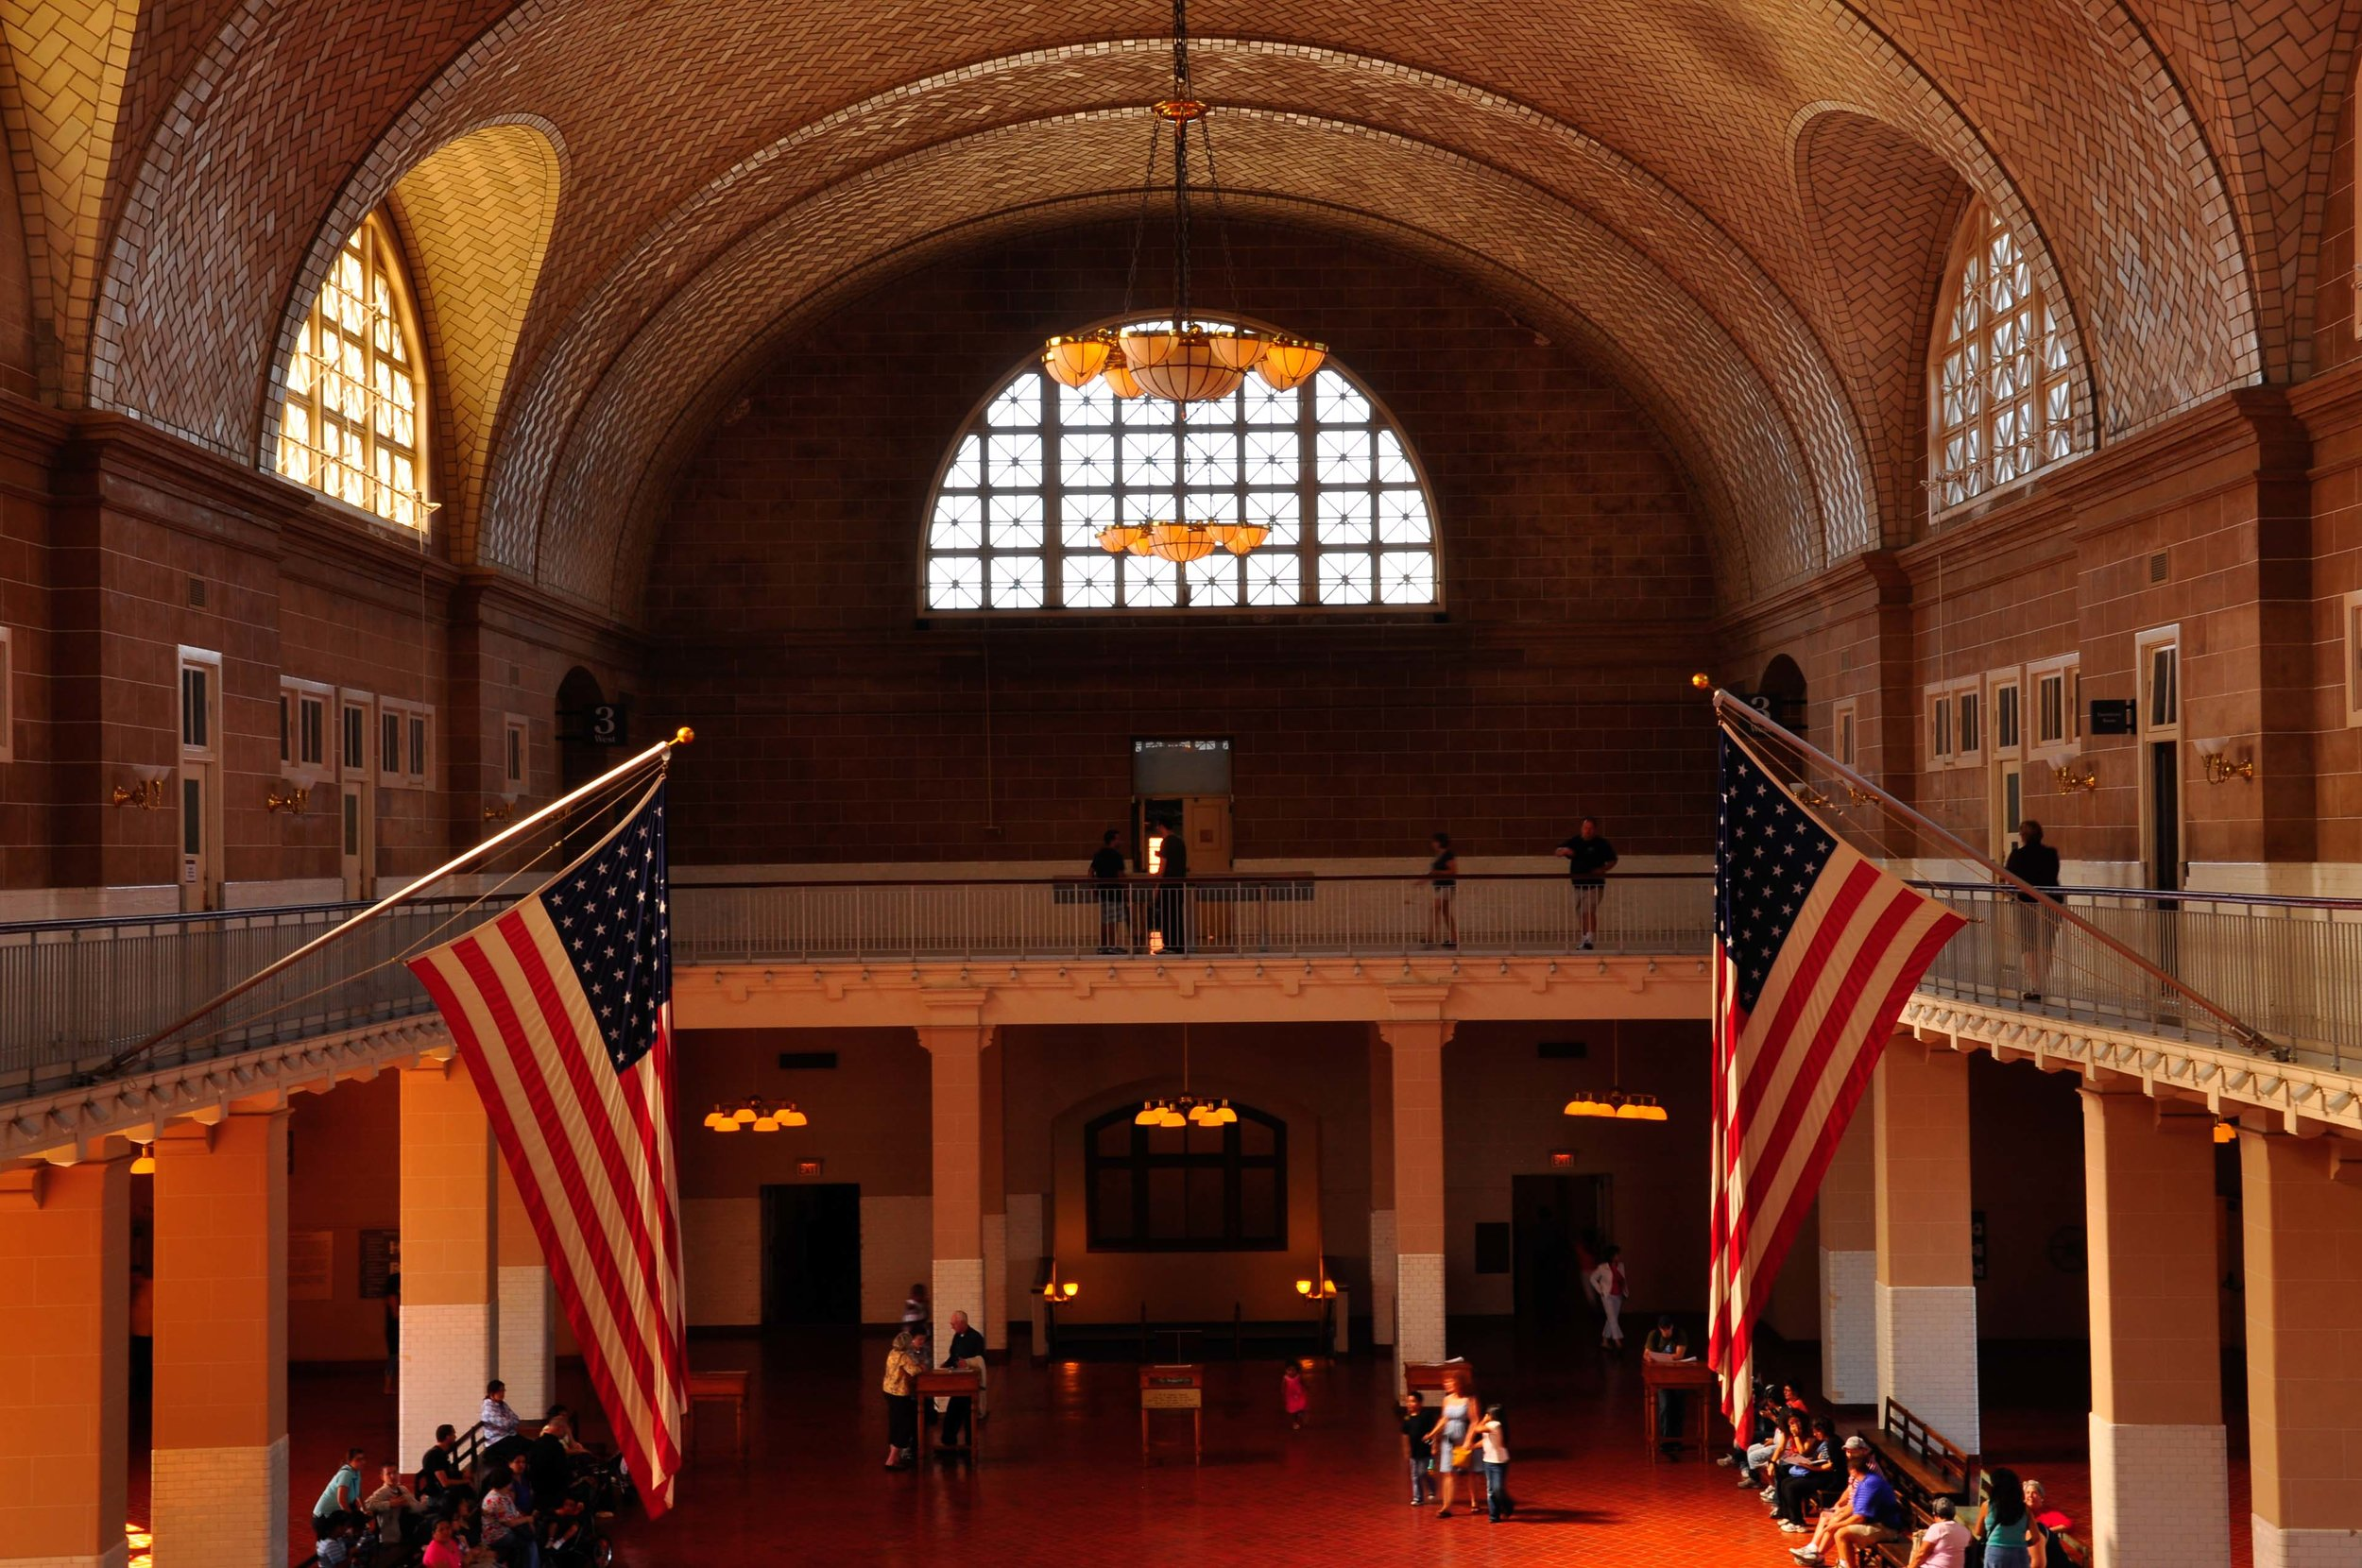 Main Hall - Ellis Island. New York, NY 2009